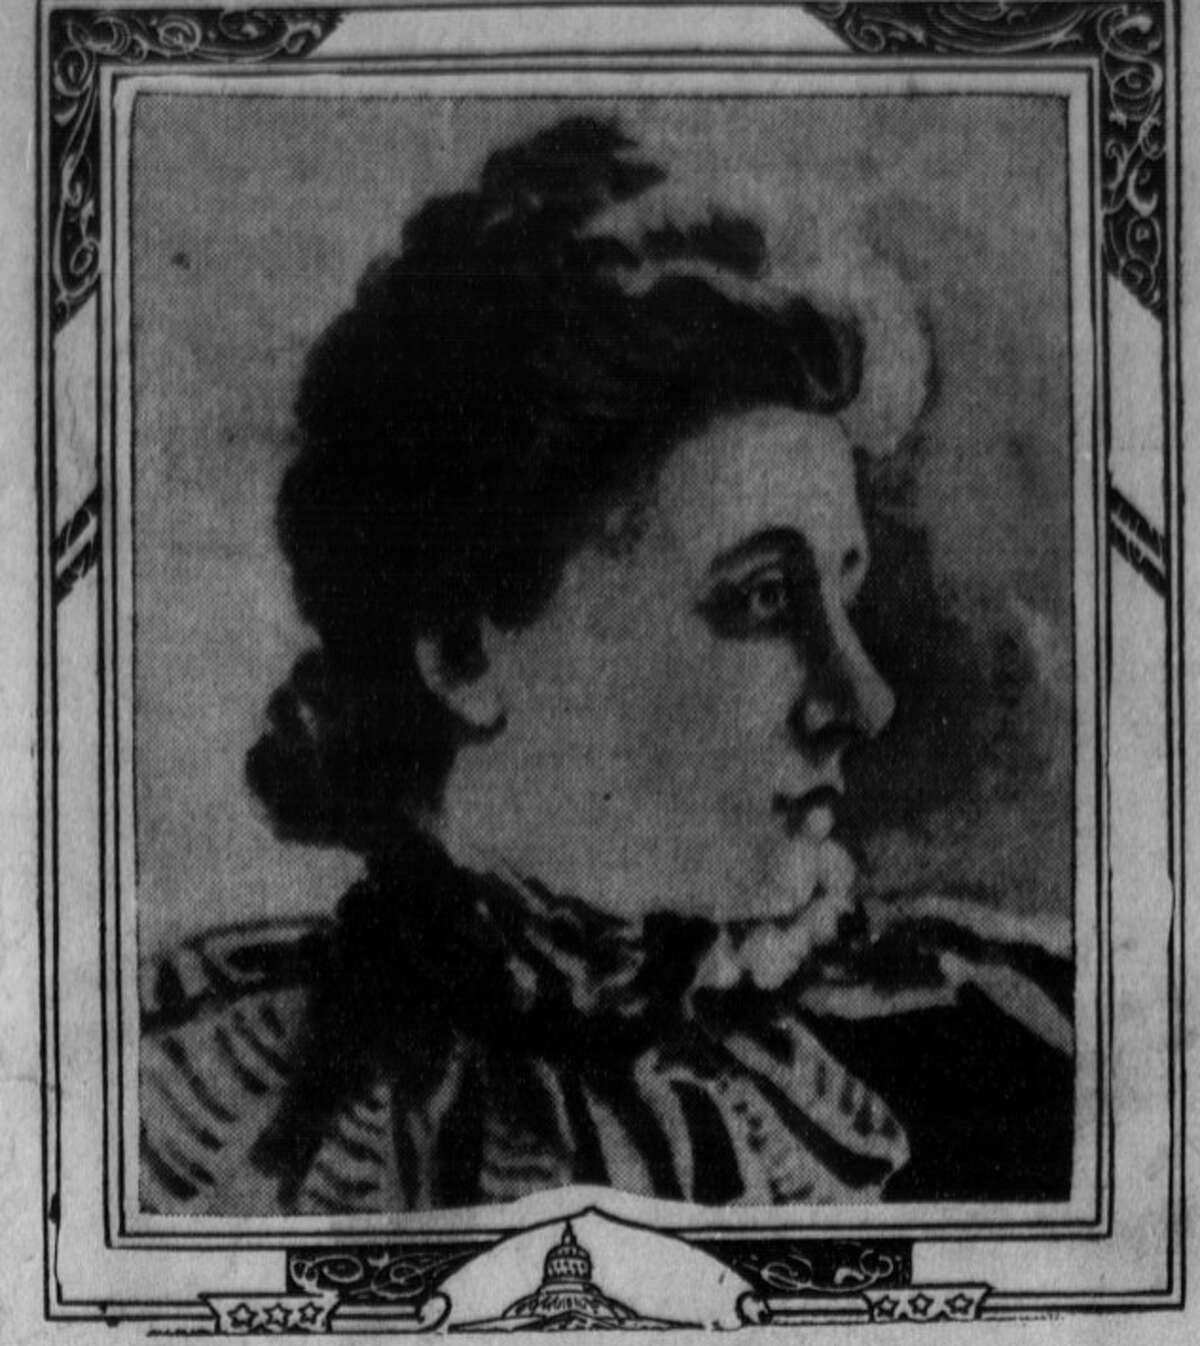 A portrait of Mrs. Jane Stanford's personal secretary, Bertha Berner, from a 1905 issue of the Los Angeles Herald.